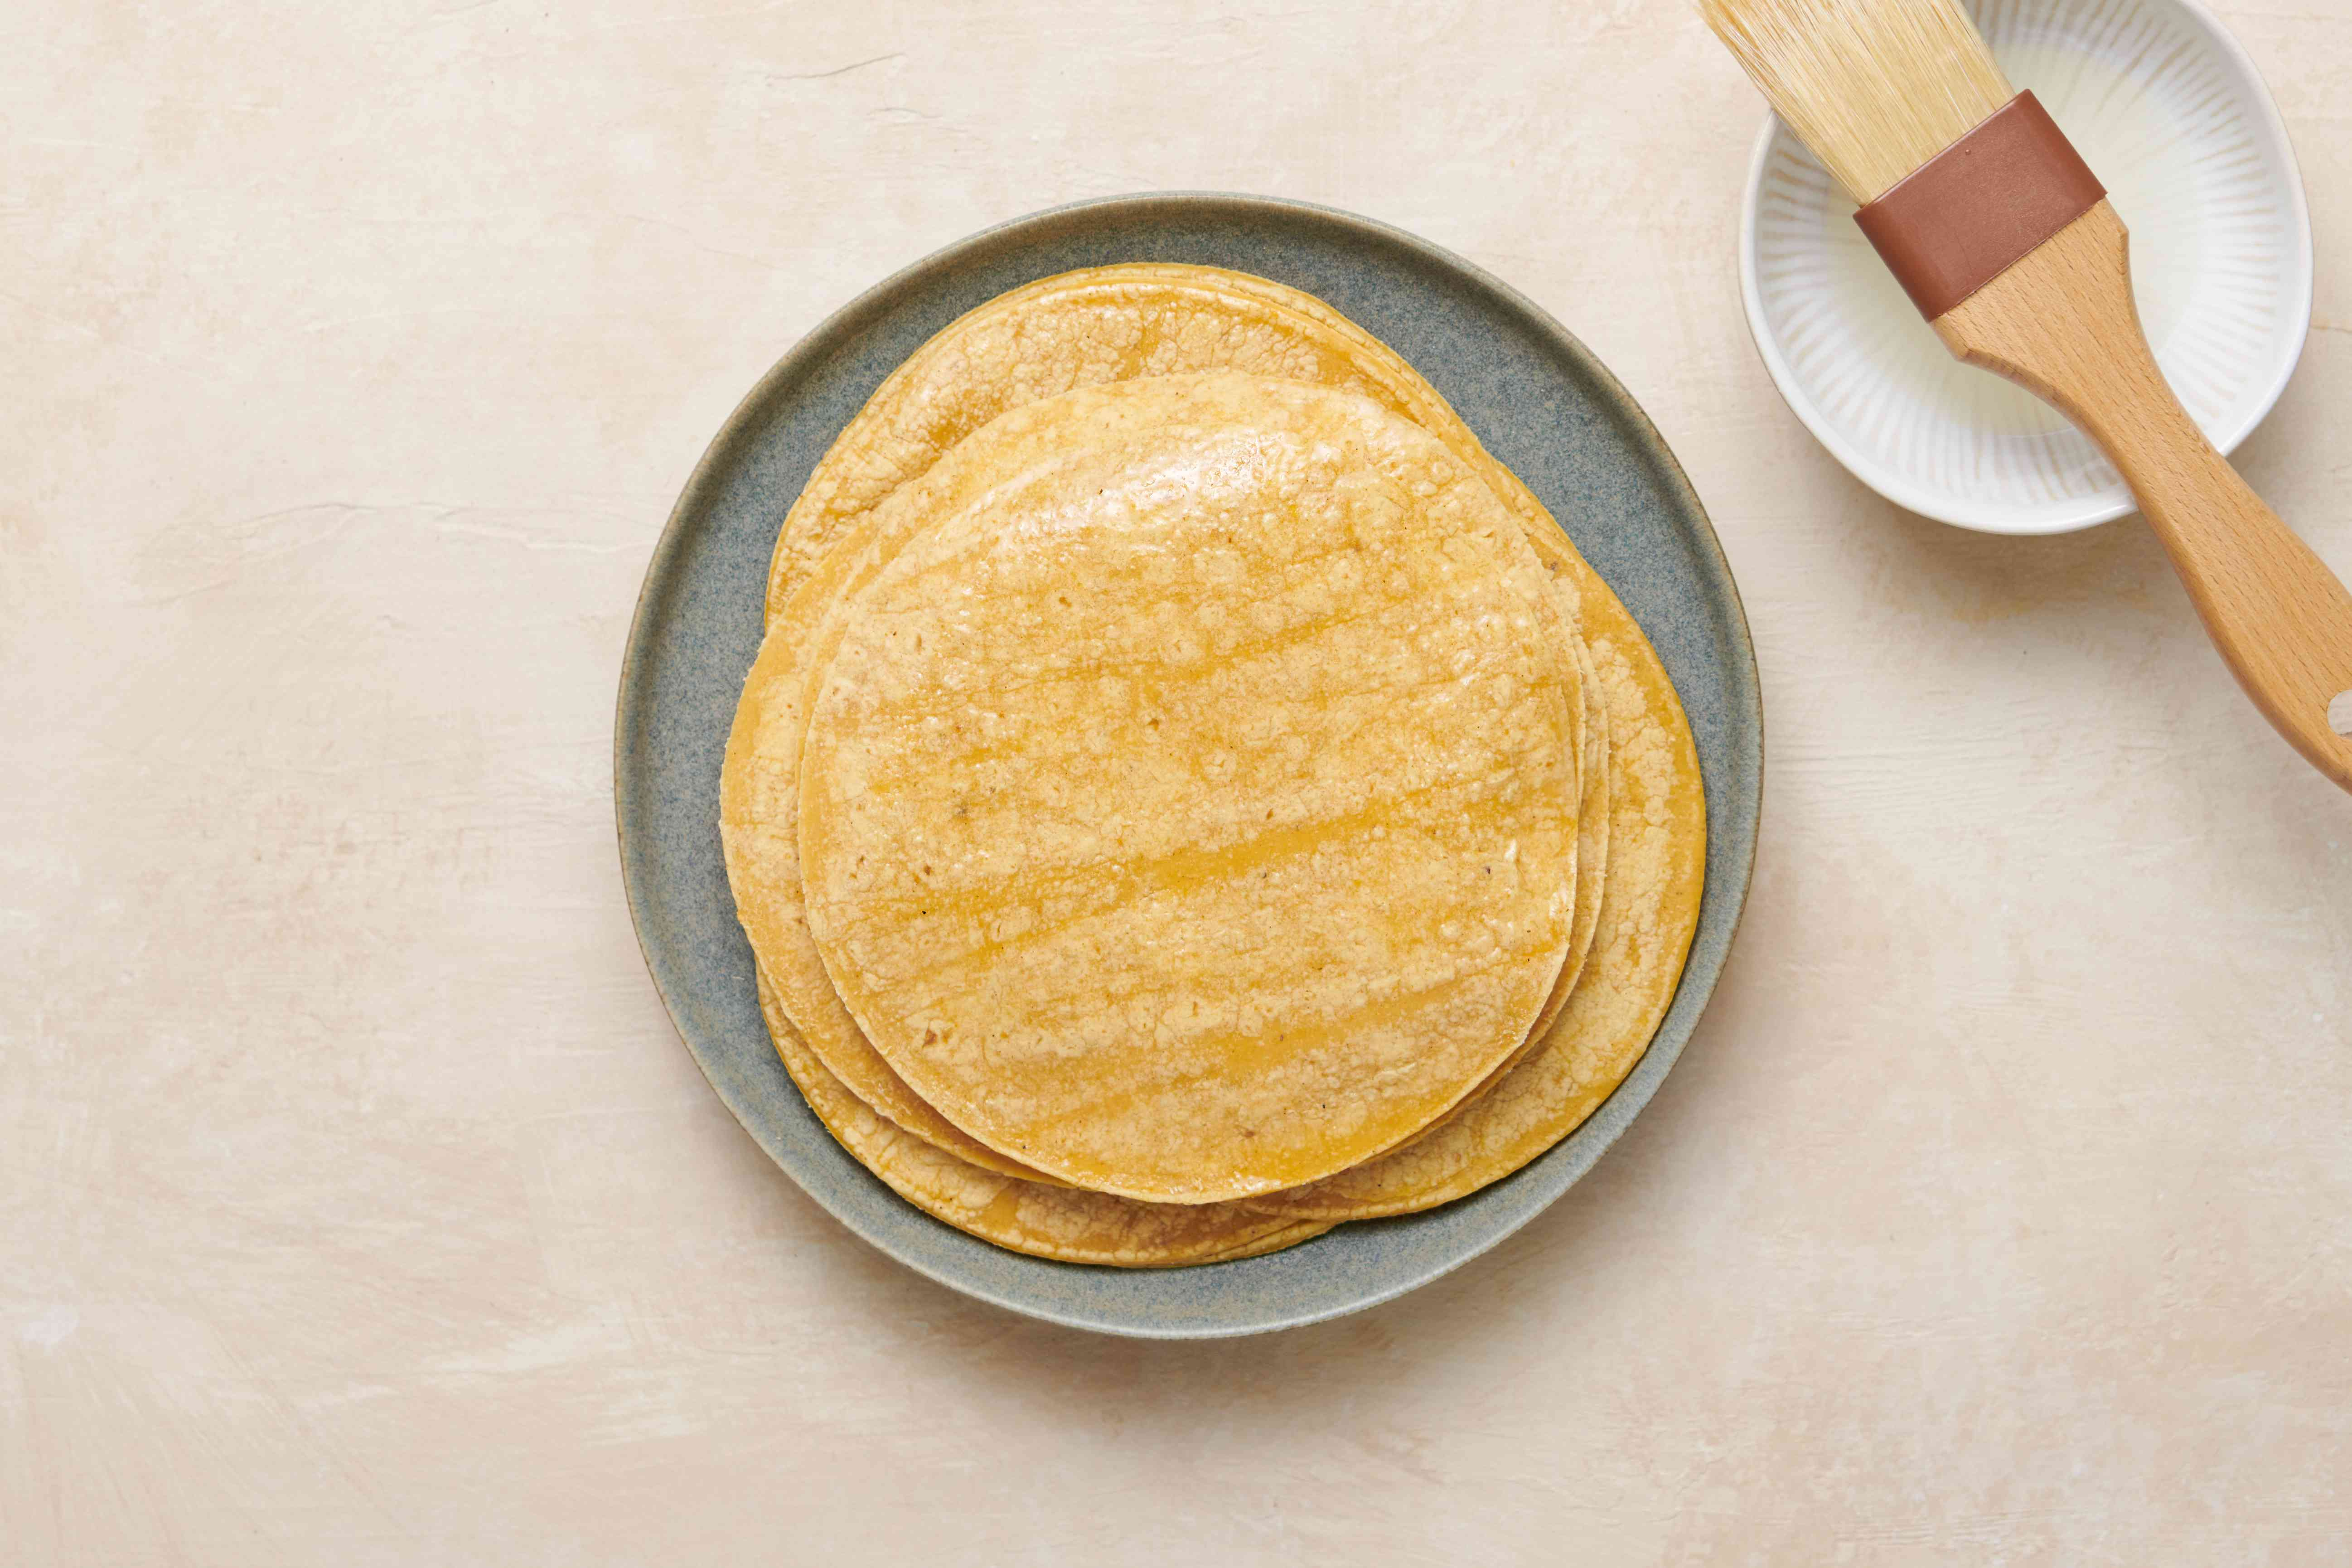 Tortillas brushed with oil